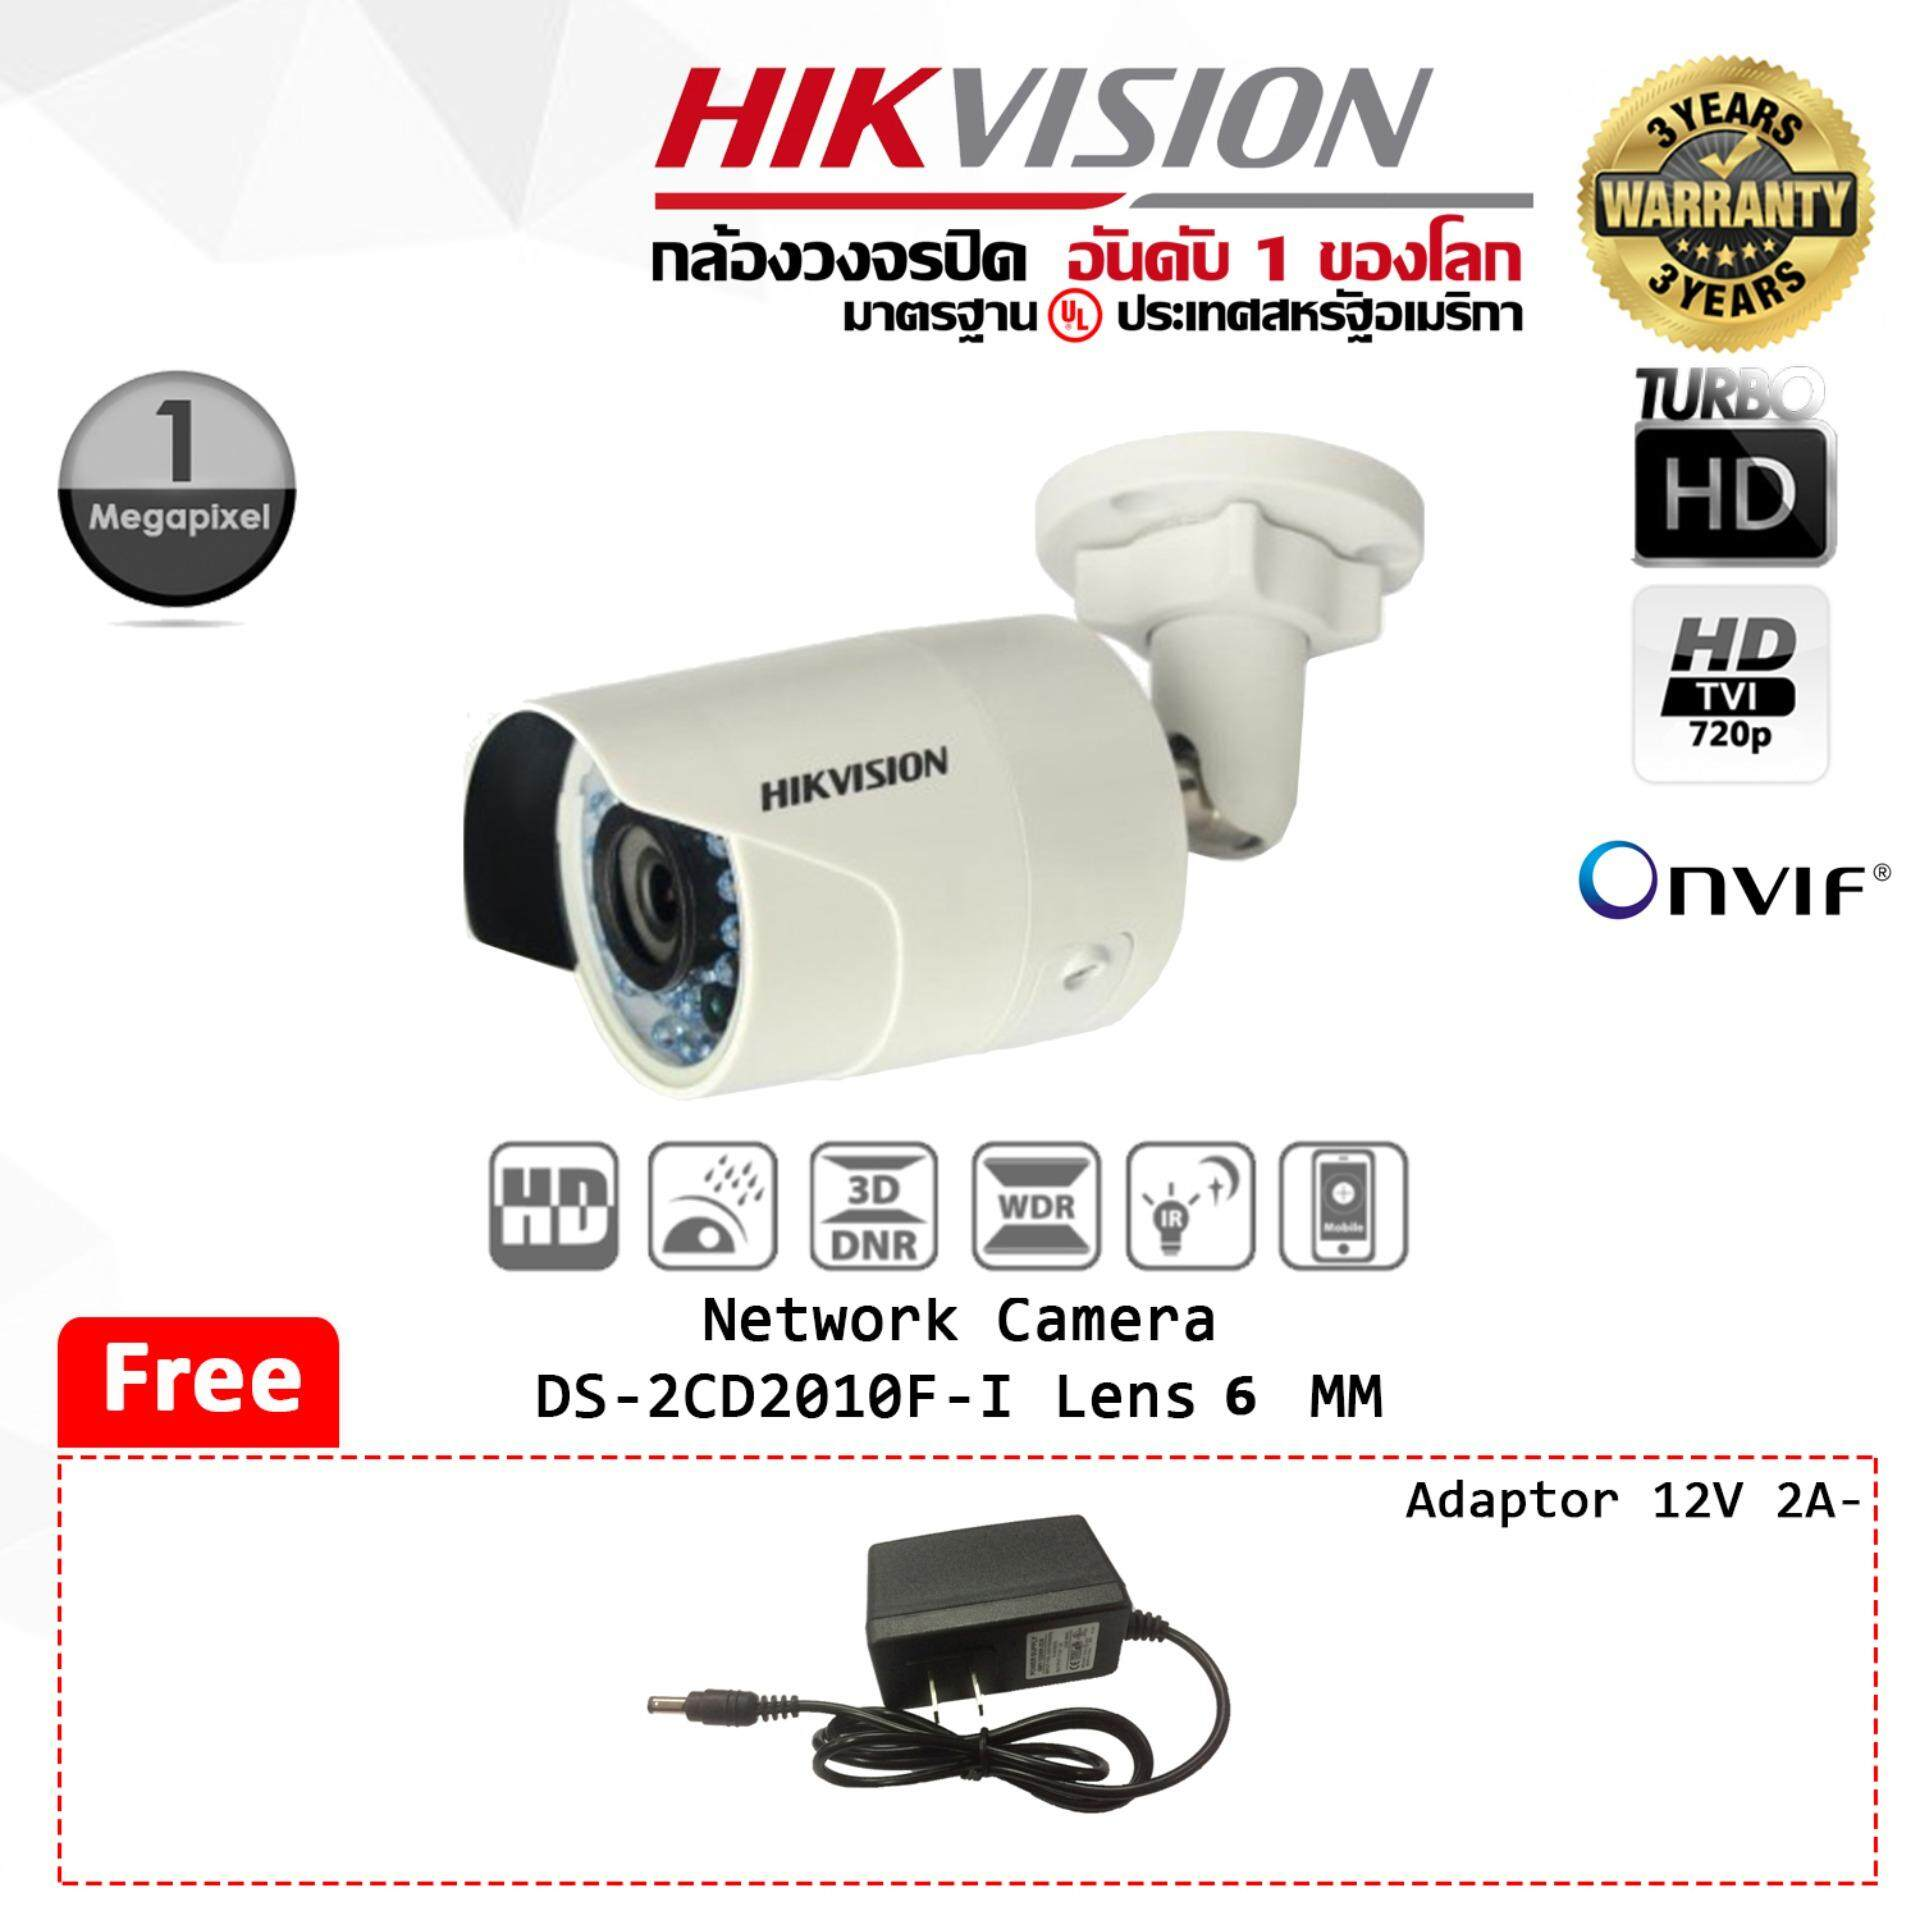 ราคา กล้องวงจรปิด Hikvision Network Camera Ds 2Cd2010F I 1 3 Mp Ir Mini Bullet Camera Lens 6 Mm Ip ฟรี Adaptor 12V 2A Kenpro ออนไลน์